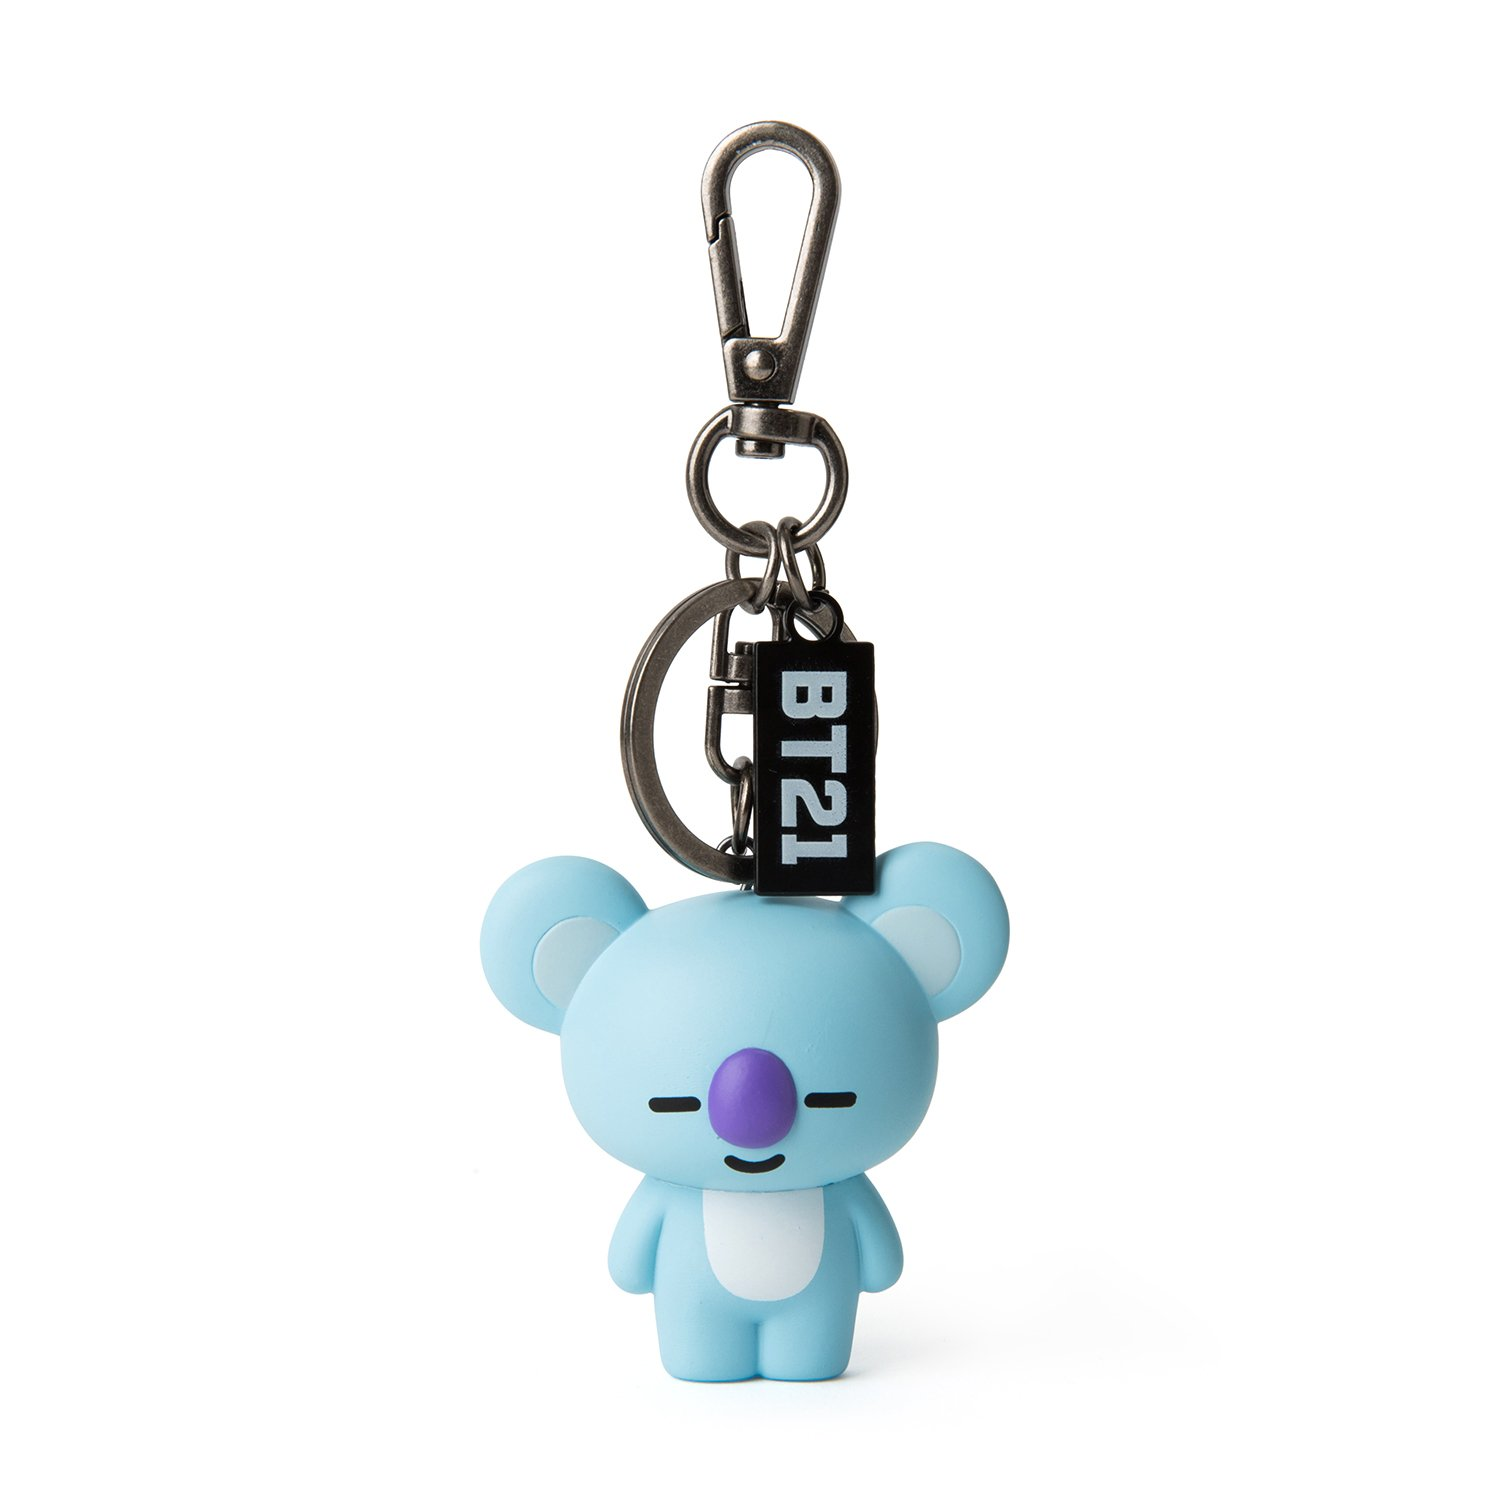 BT21 Official Merchandise by Line Friends - KOYA Keychain Ring by LINE FRIENDS